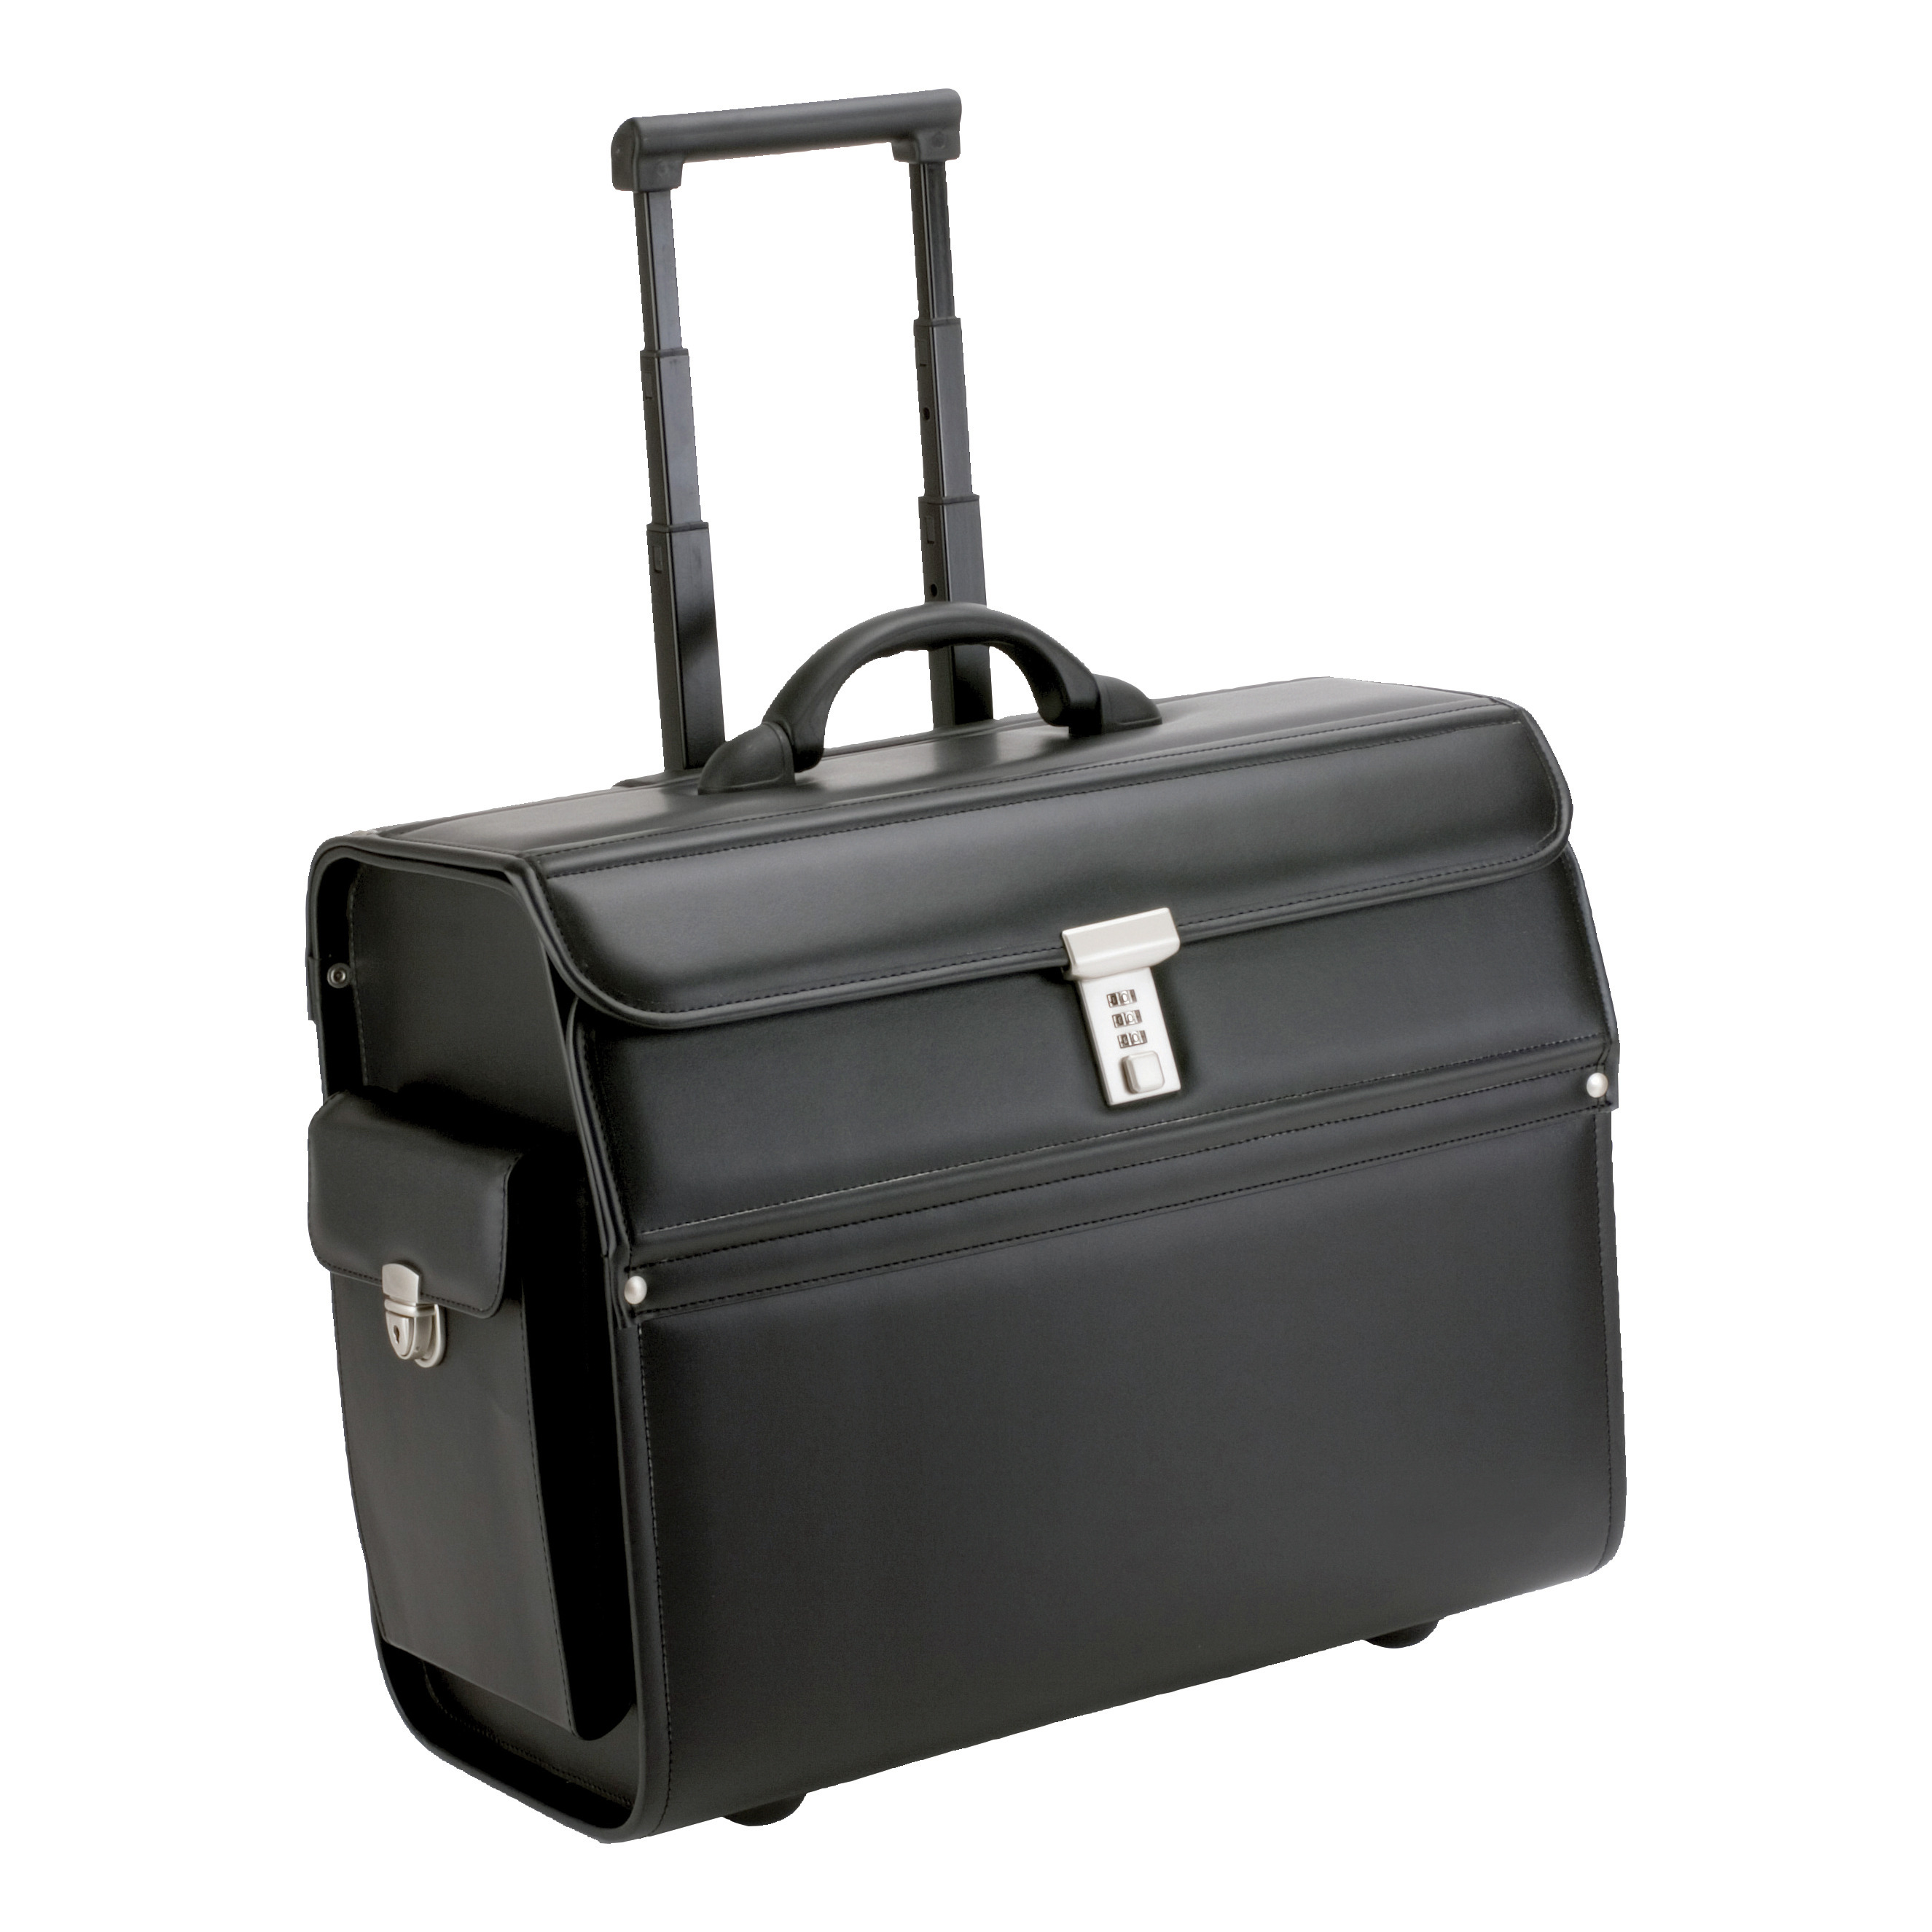 Briefcases & Luggage Alassio Mondo Trolley Pilot Case Laptop Compartment 2 Combination Locks Leather-look Black Ref 45033